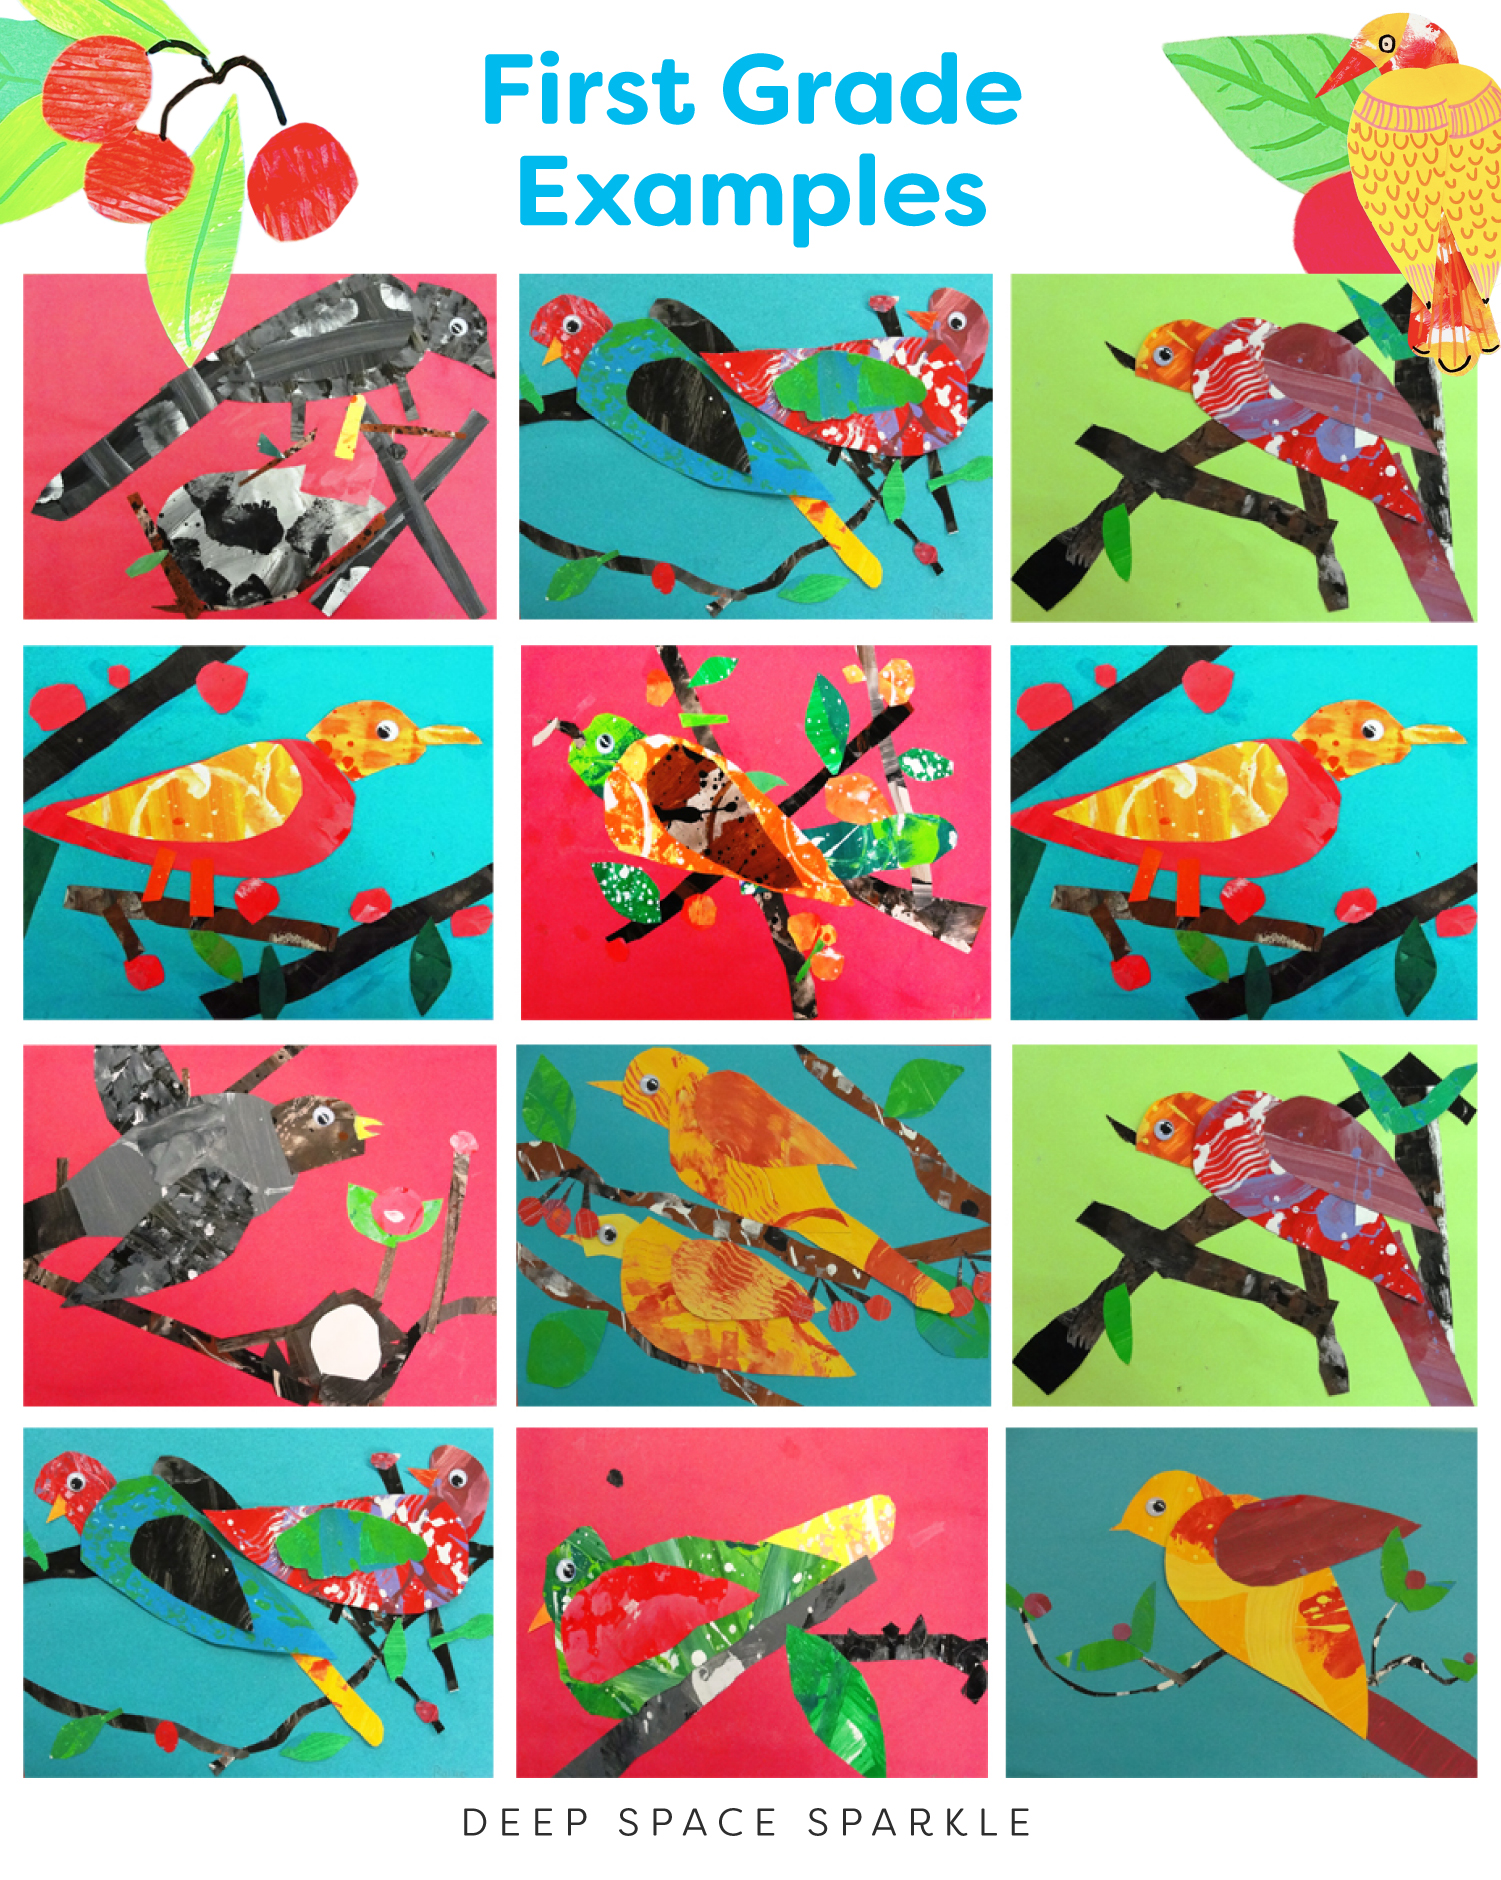 First Grade Examples Bird in a Cherry Tree